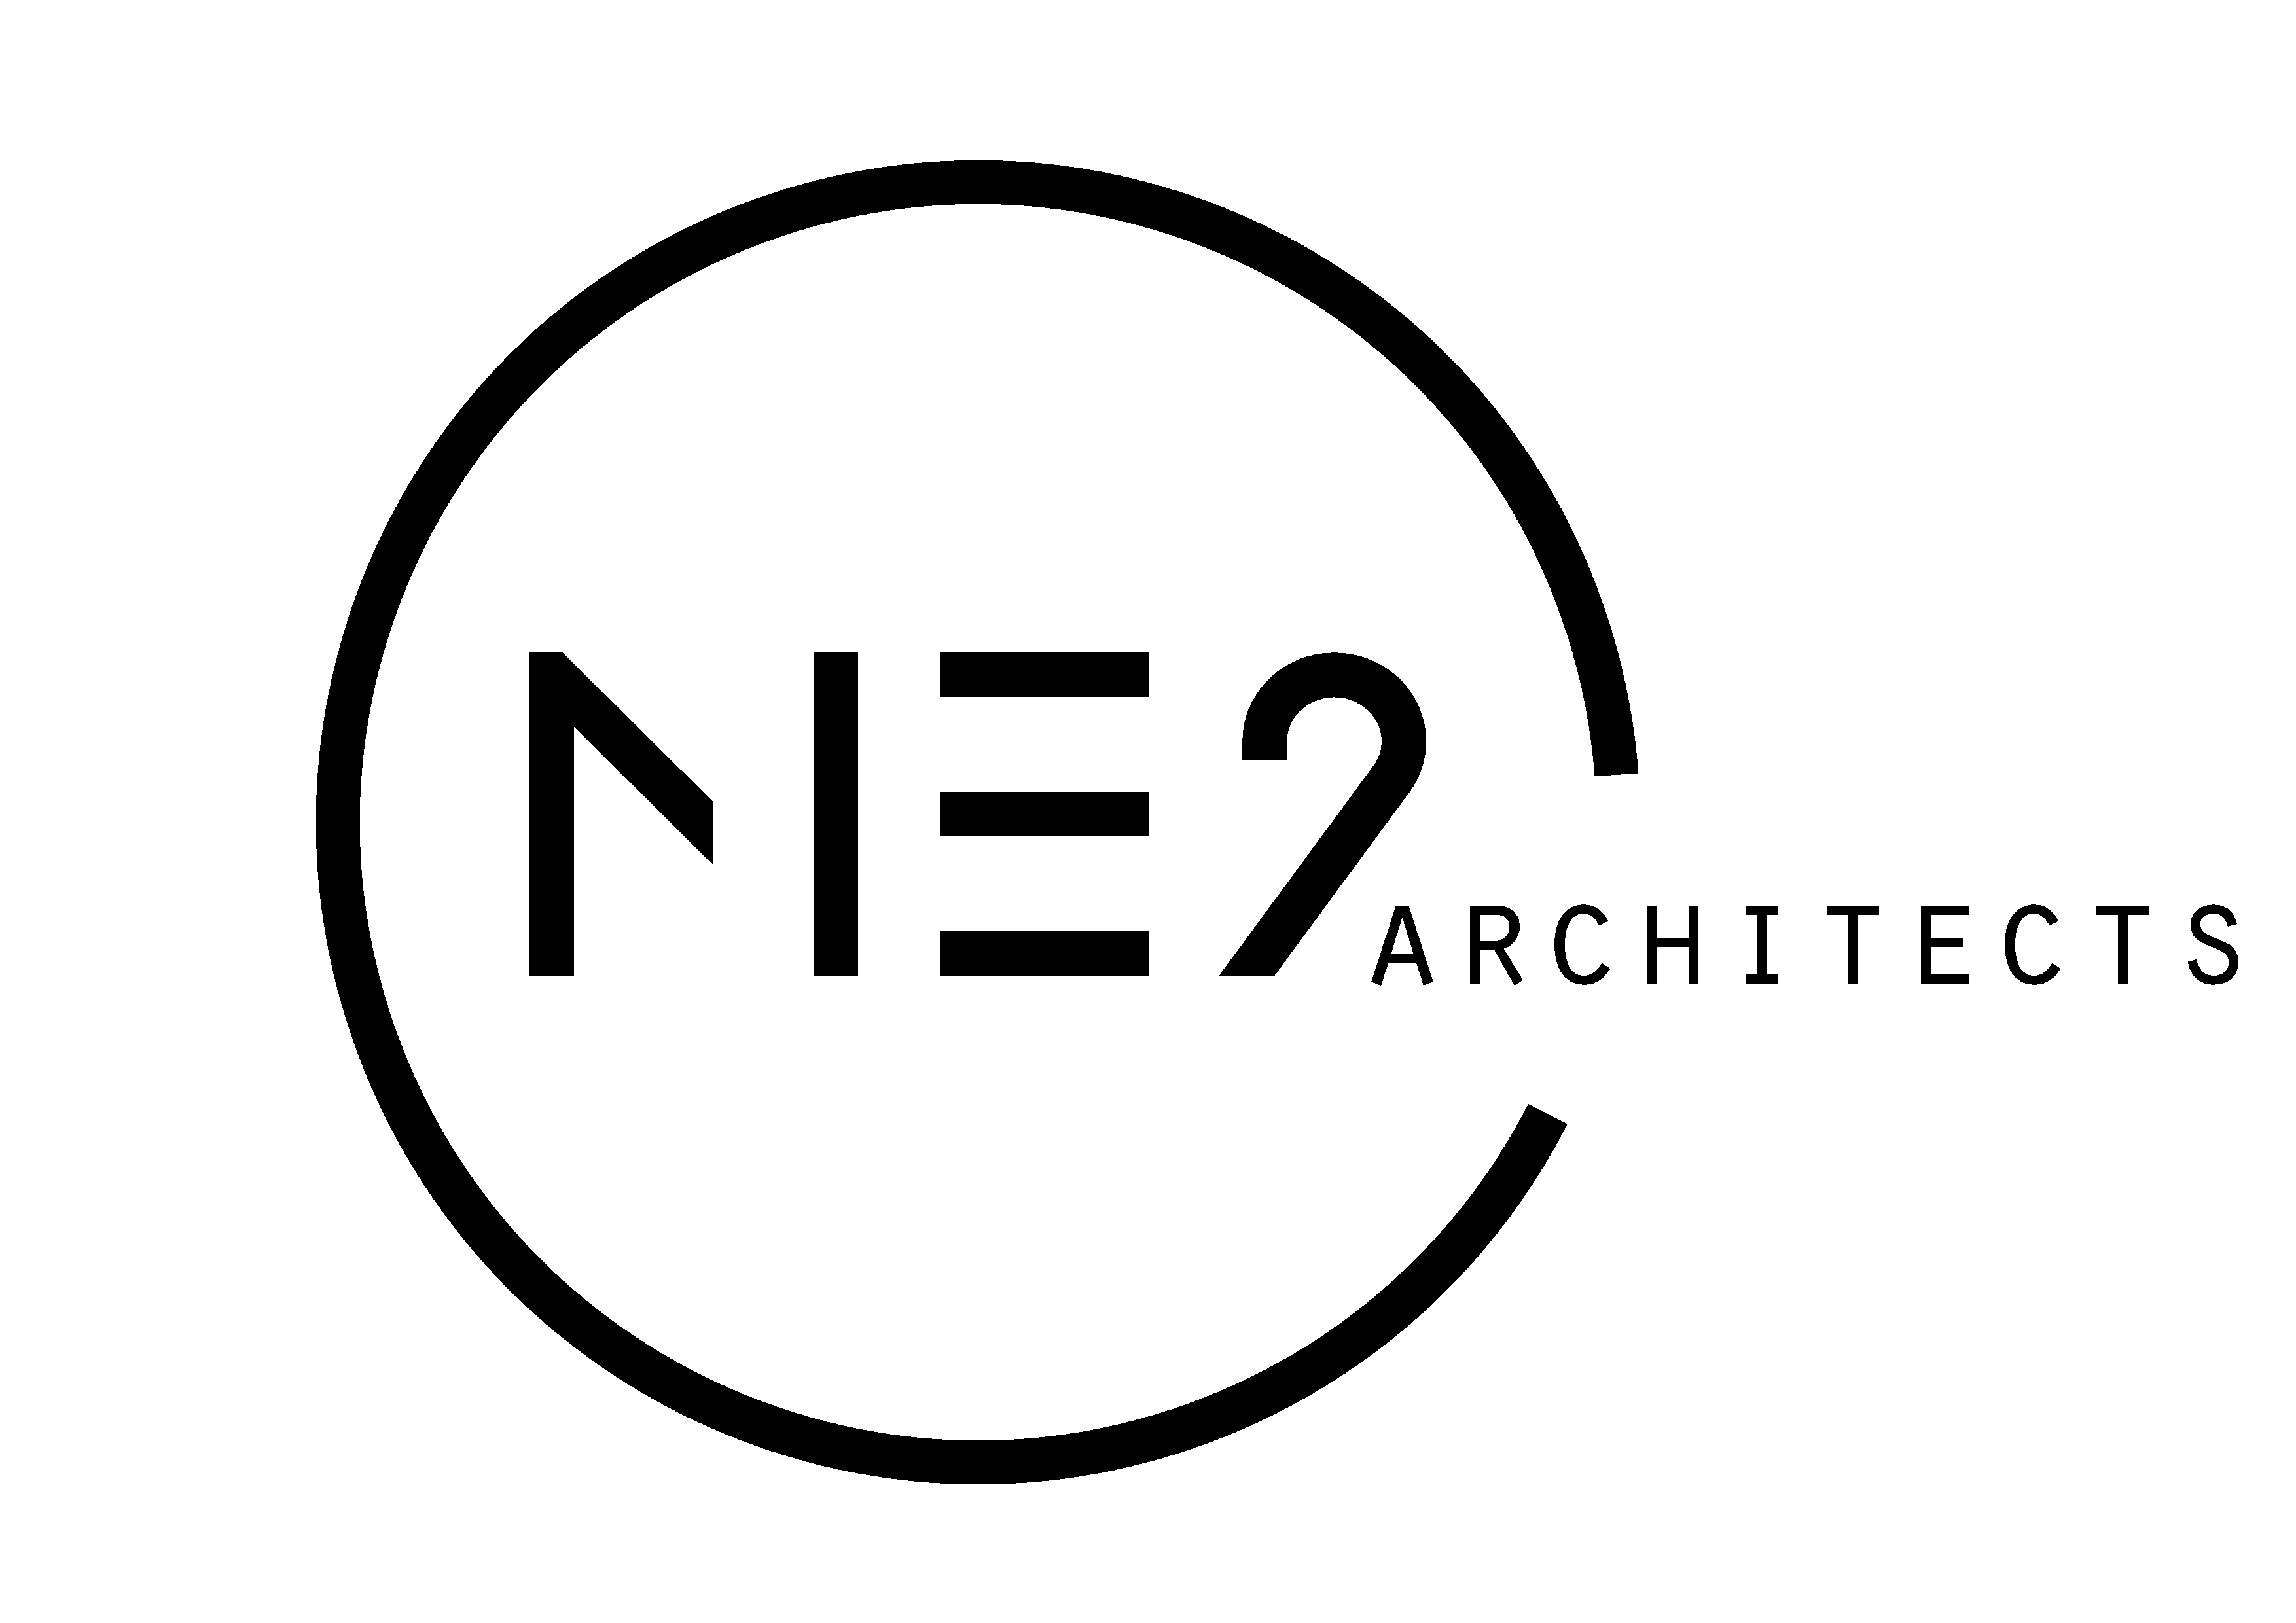 Me2architects